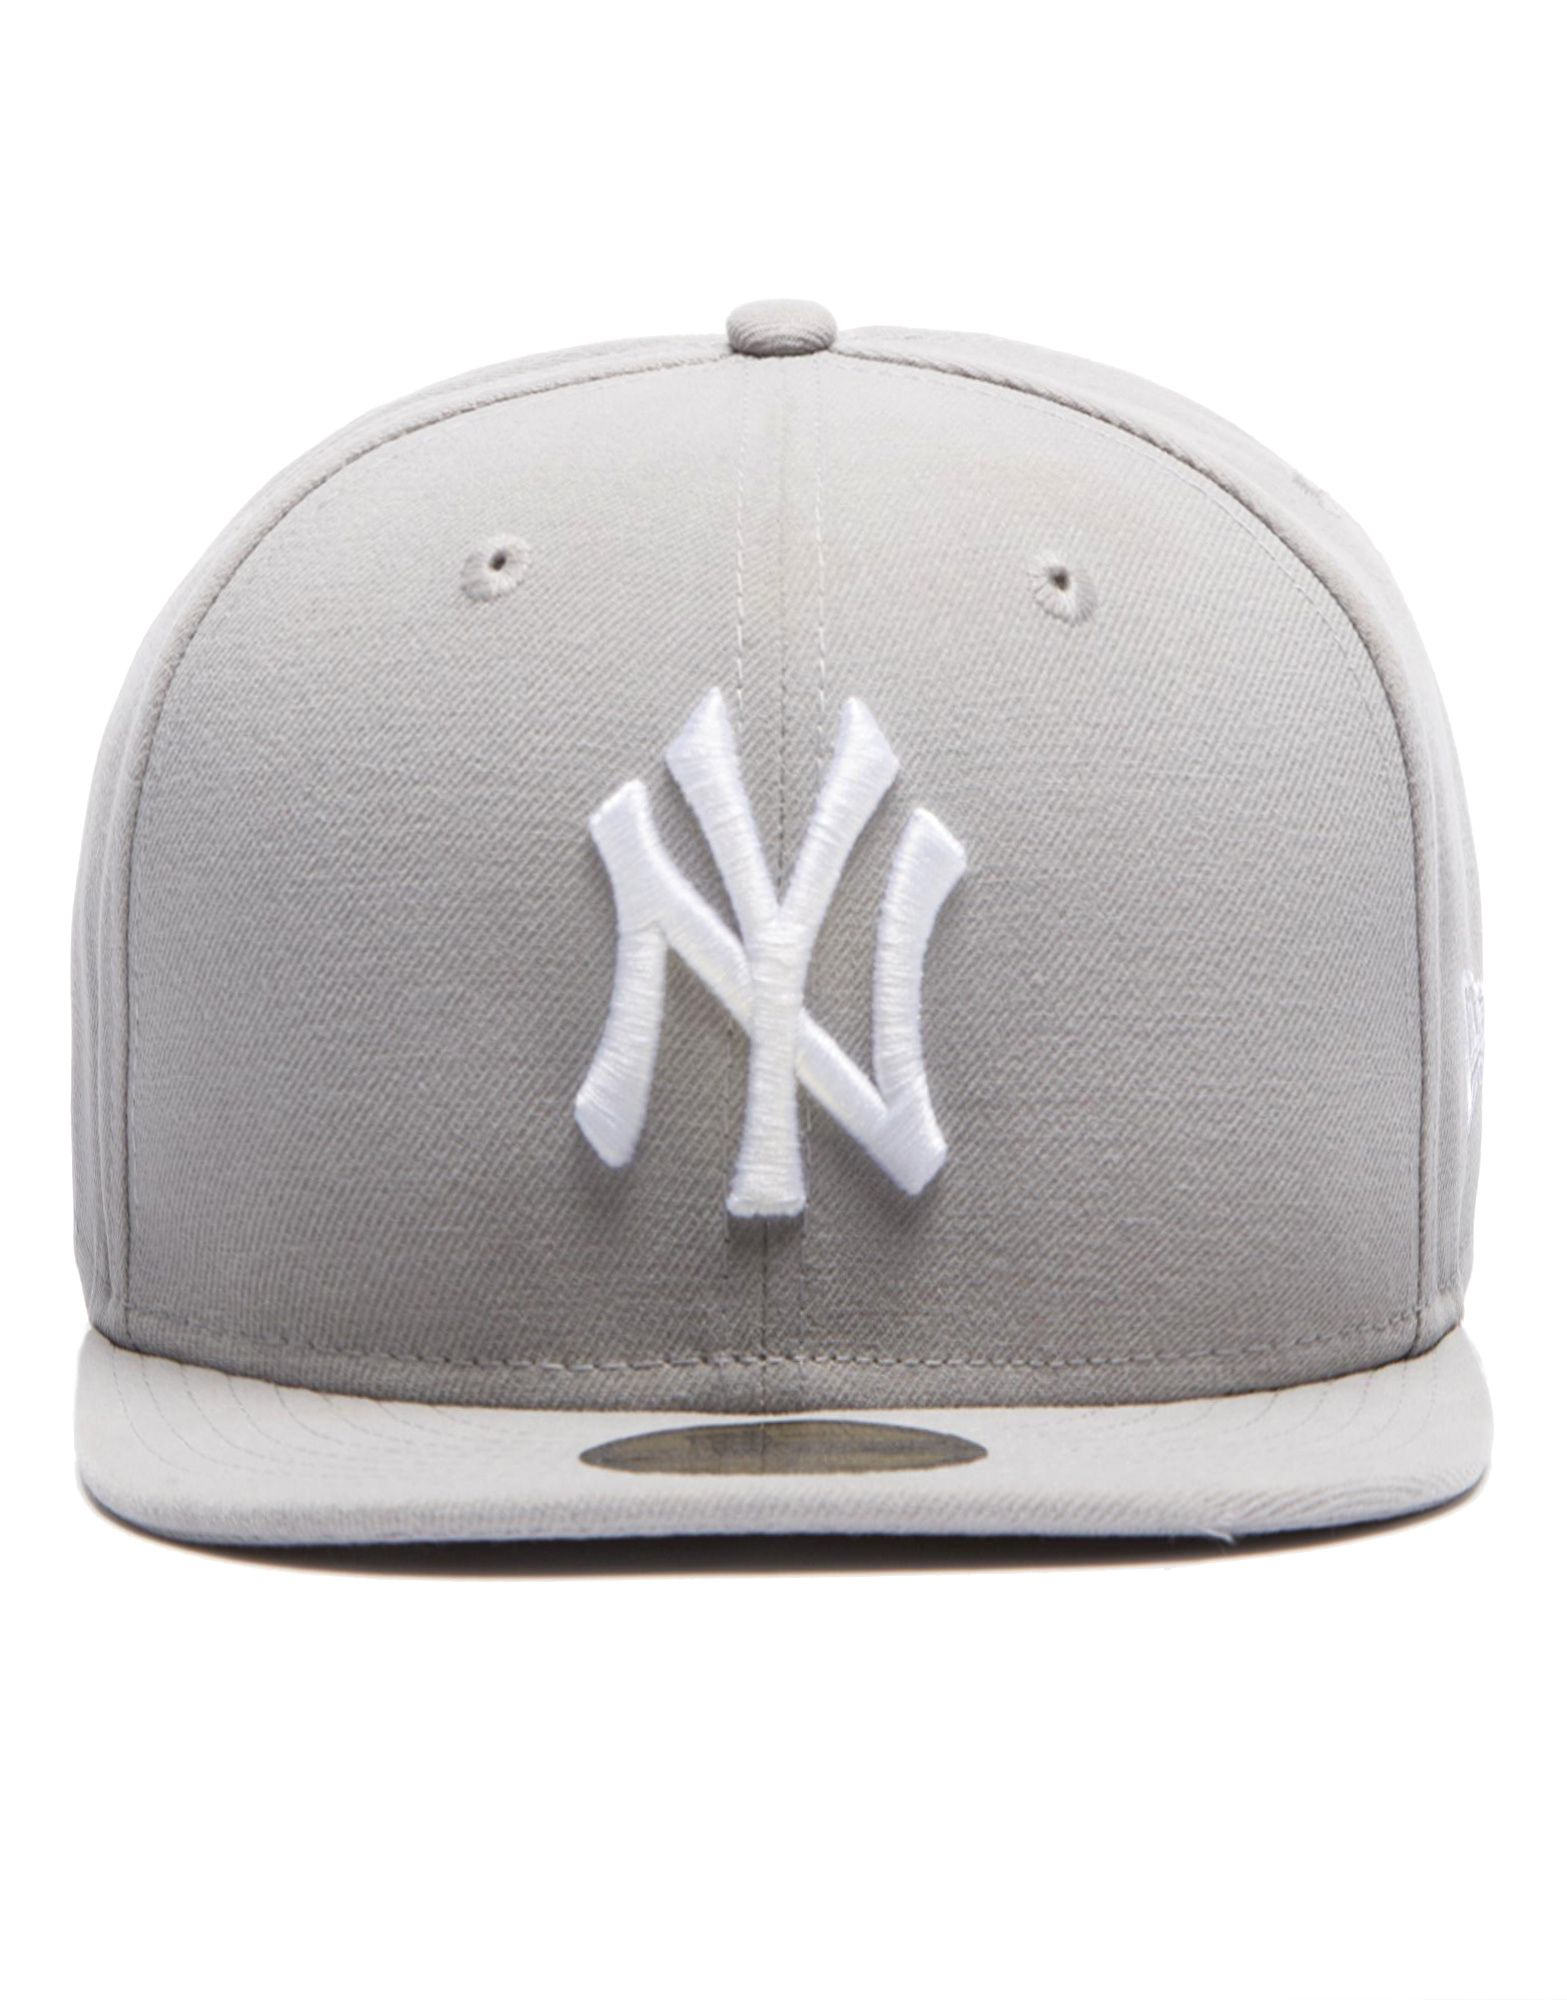 5535701bde7 high-quality New Era MLB New York Yankees 59FIFTY Fitted Cap